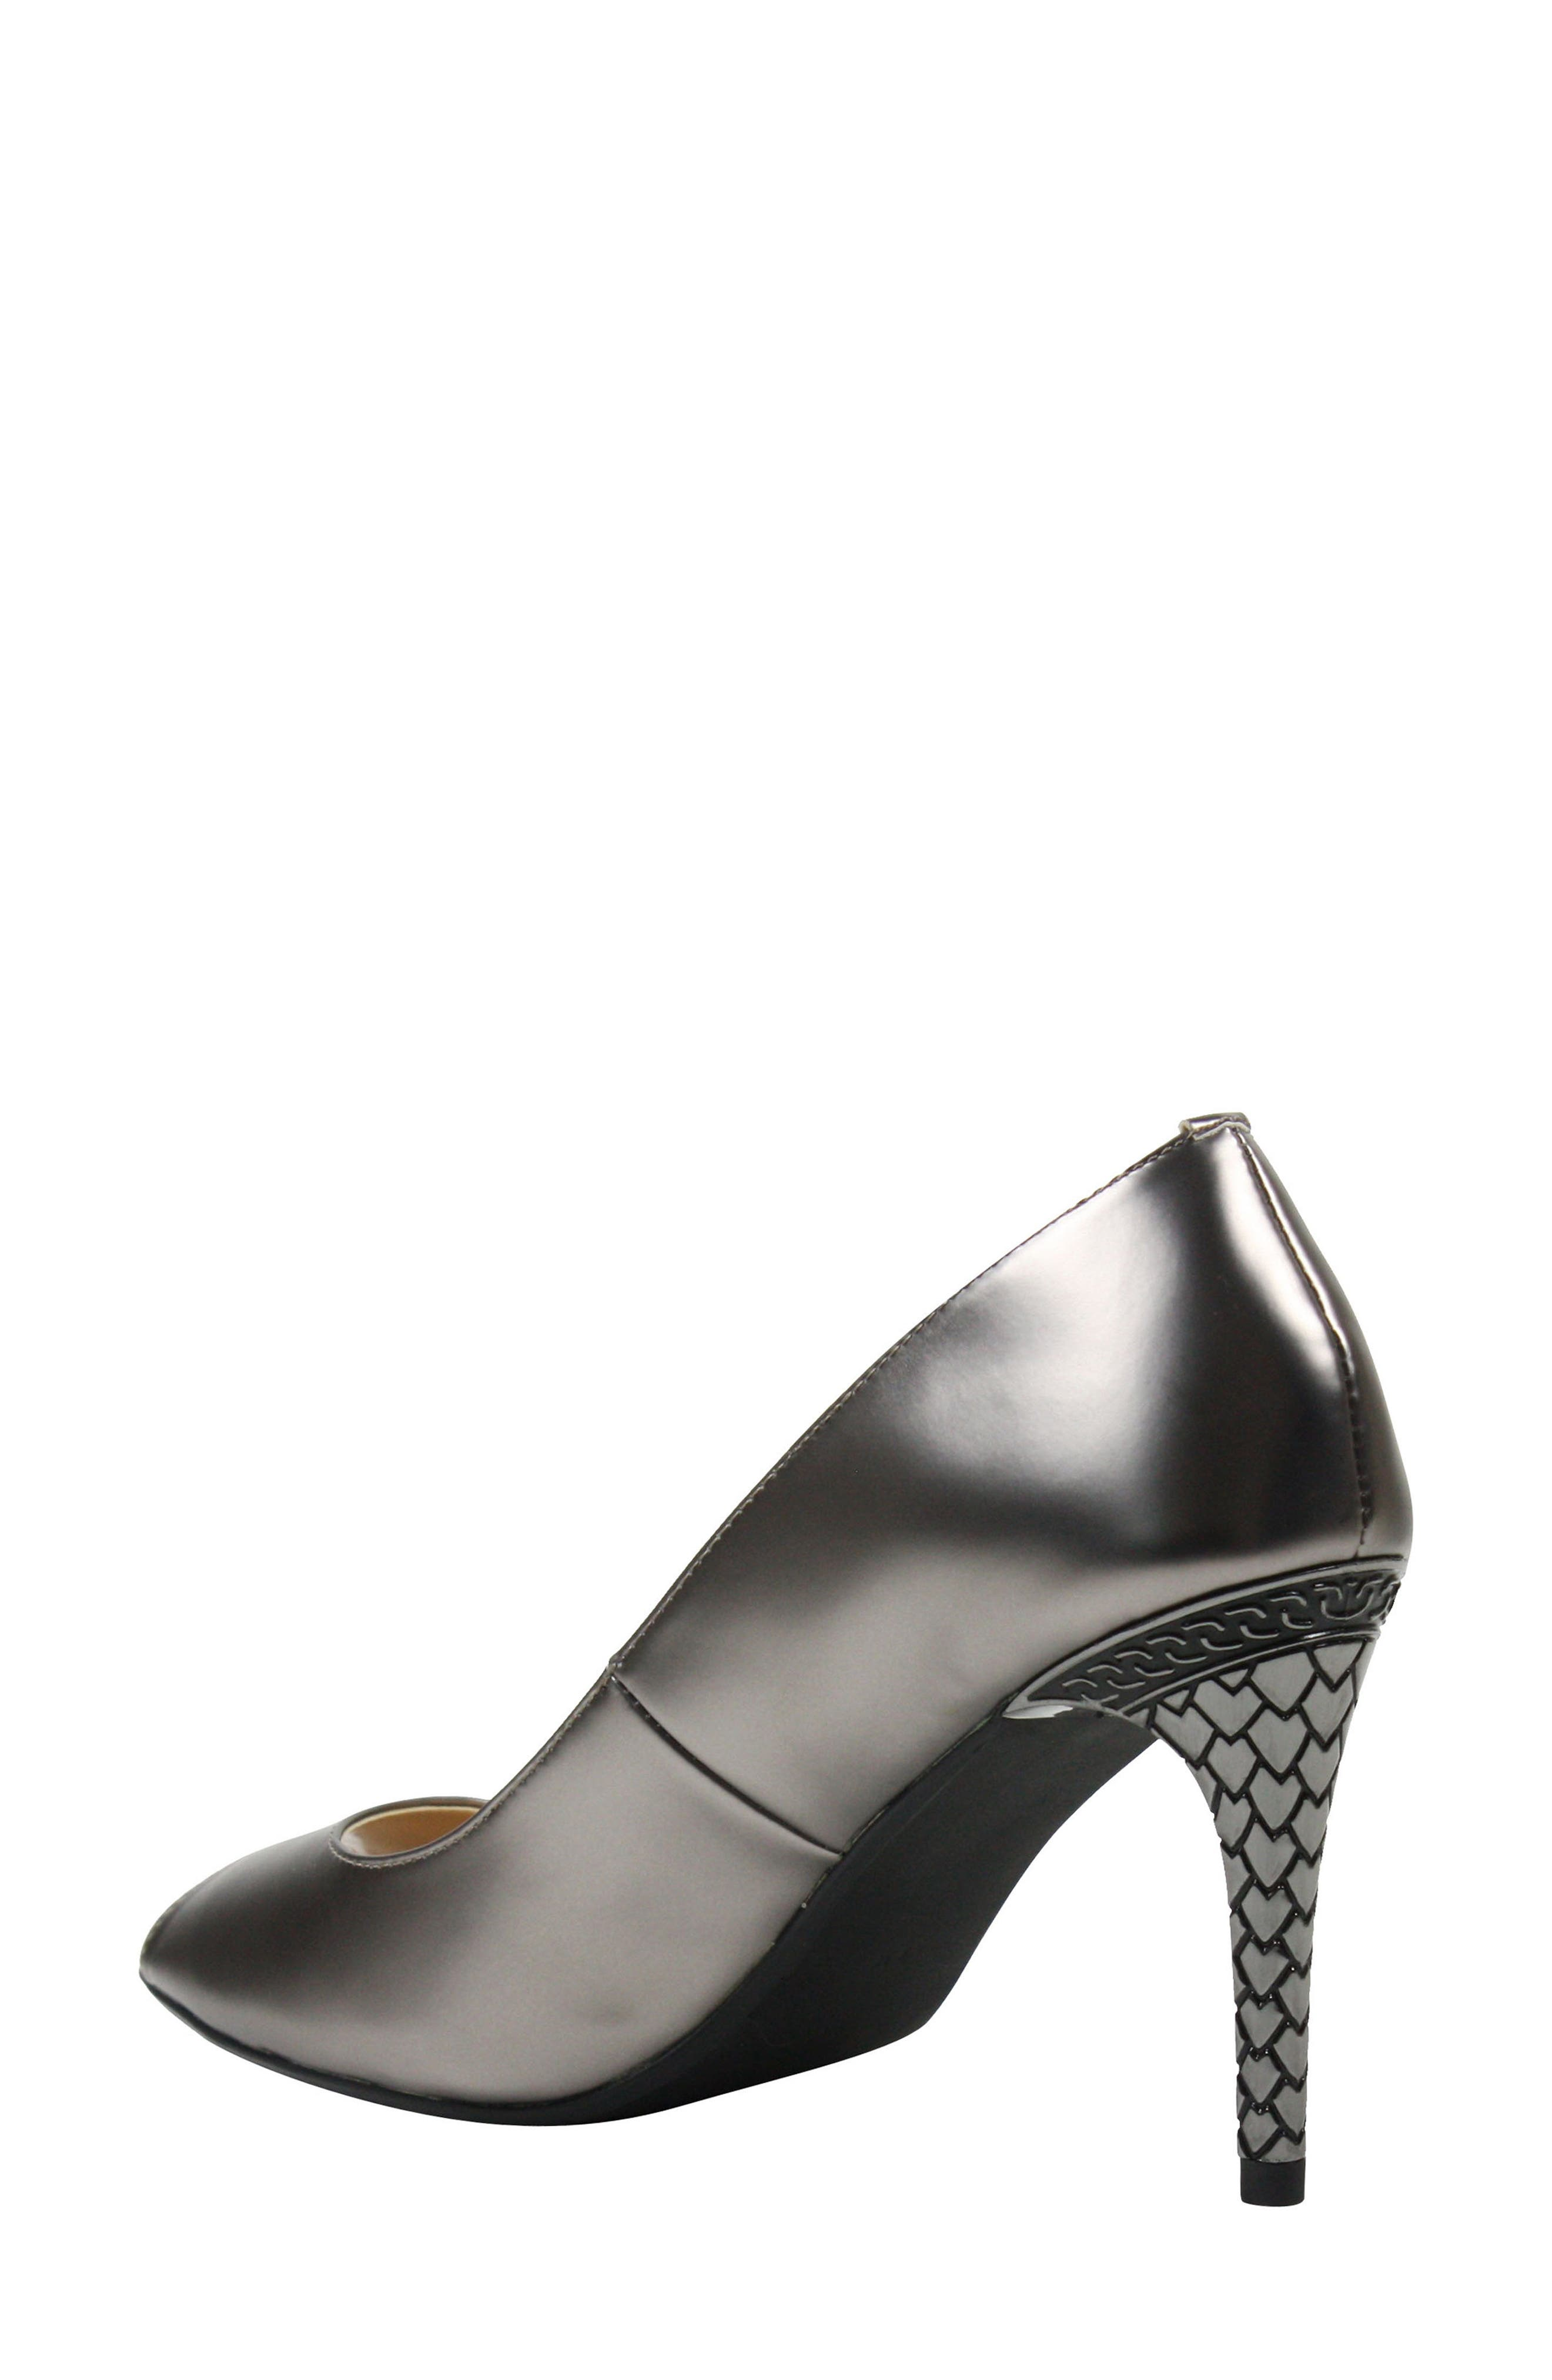 Lucera Pump,                             Alternate thumbnail 2, color,                             PEWTER FAUX LEATHER